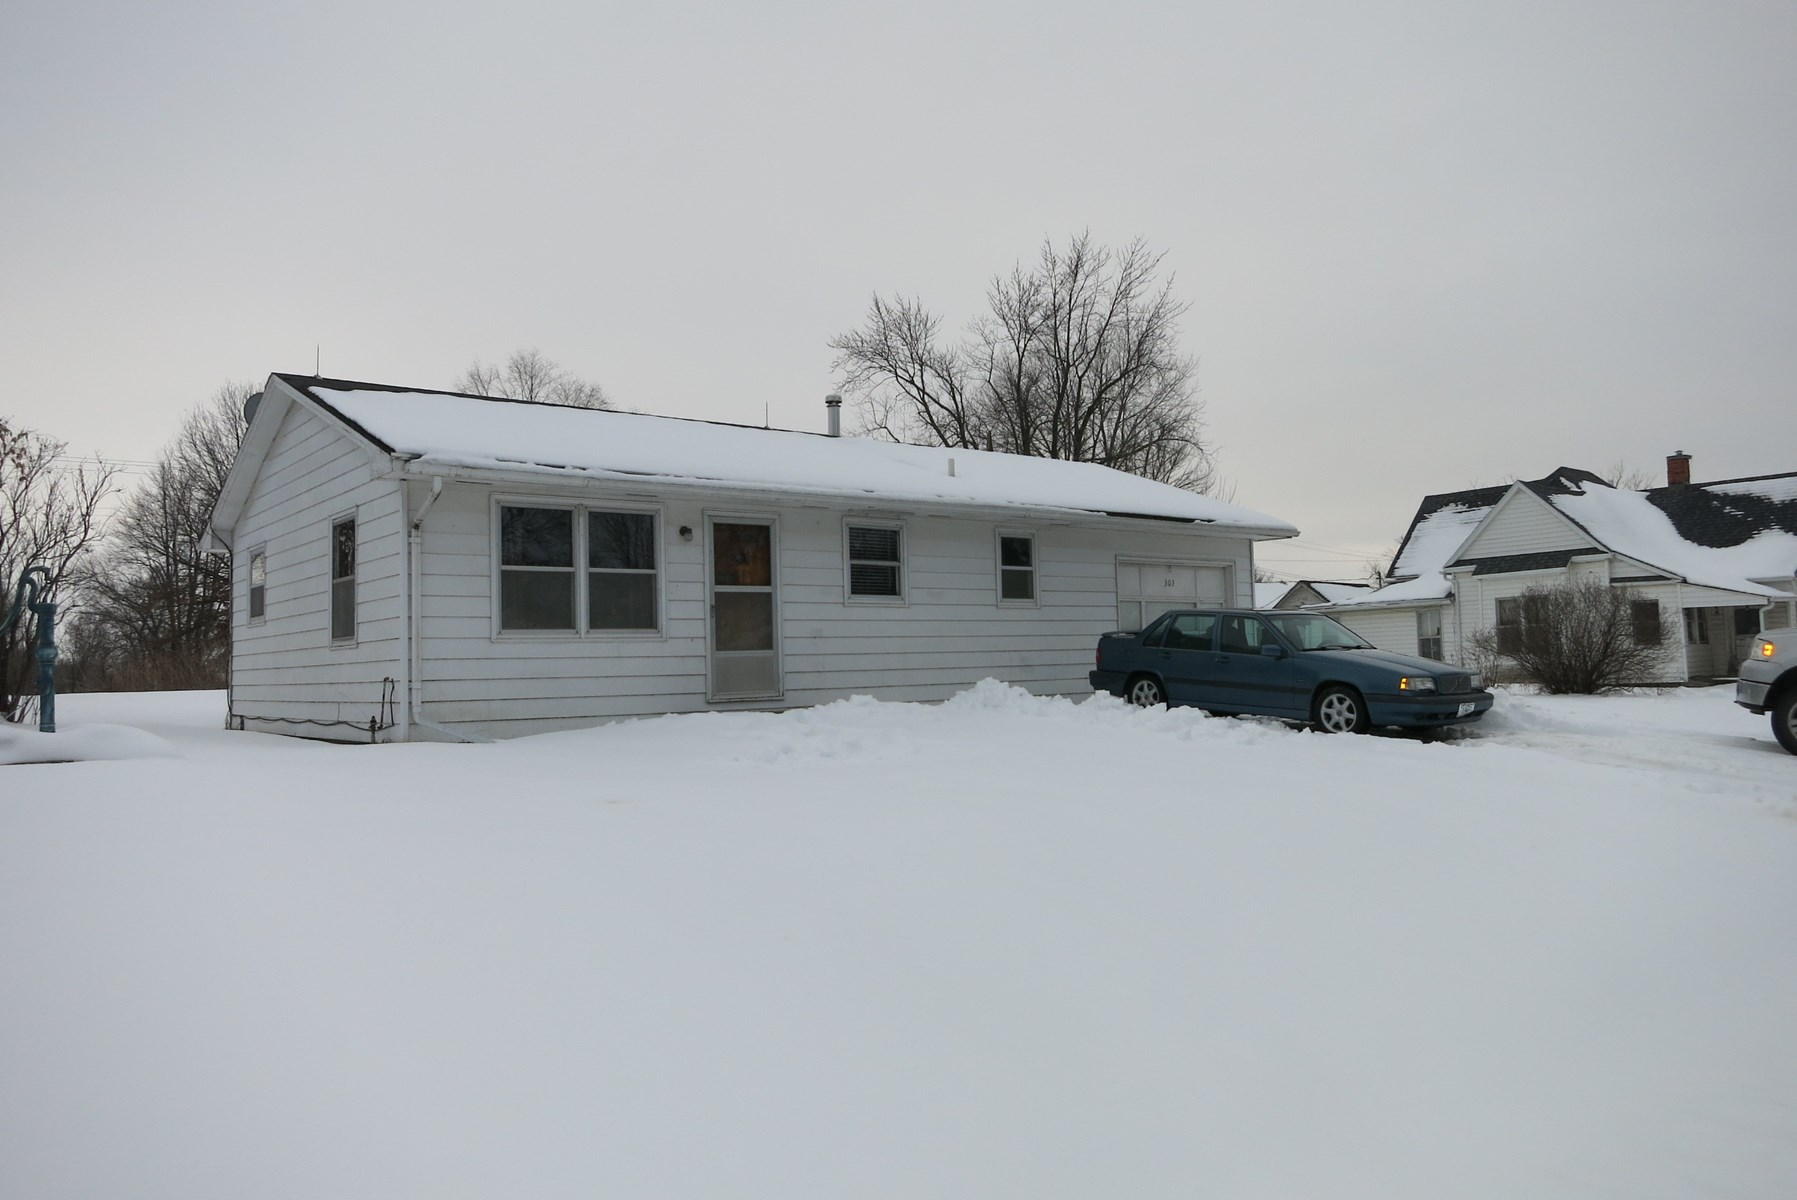 Ranch Home in Rural Community For Sale